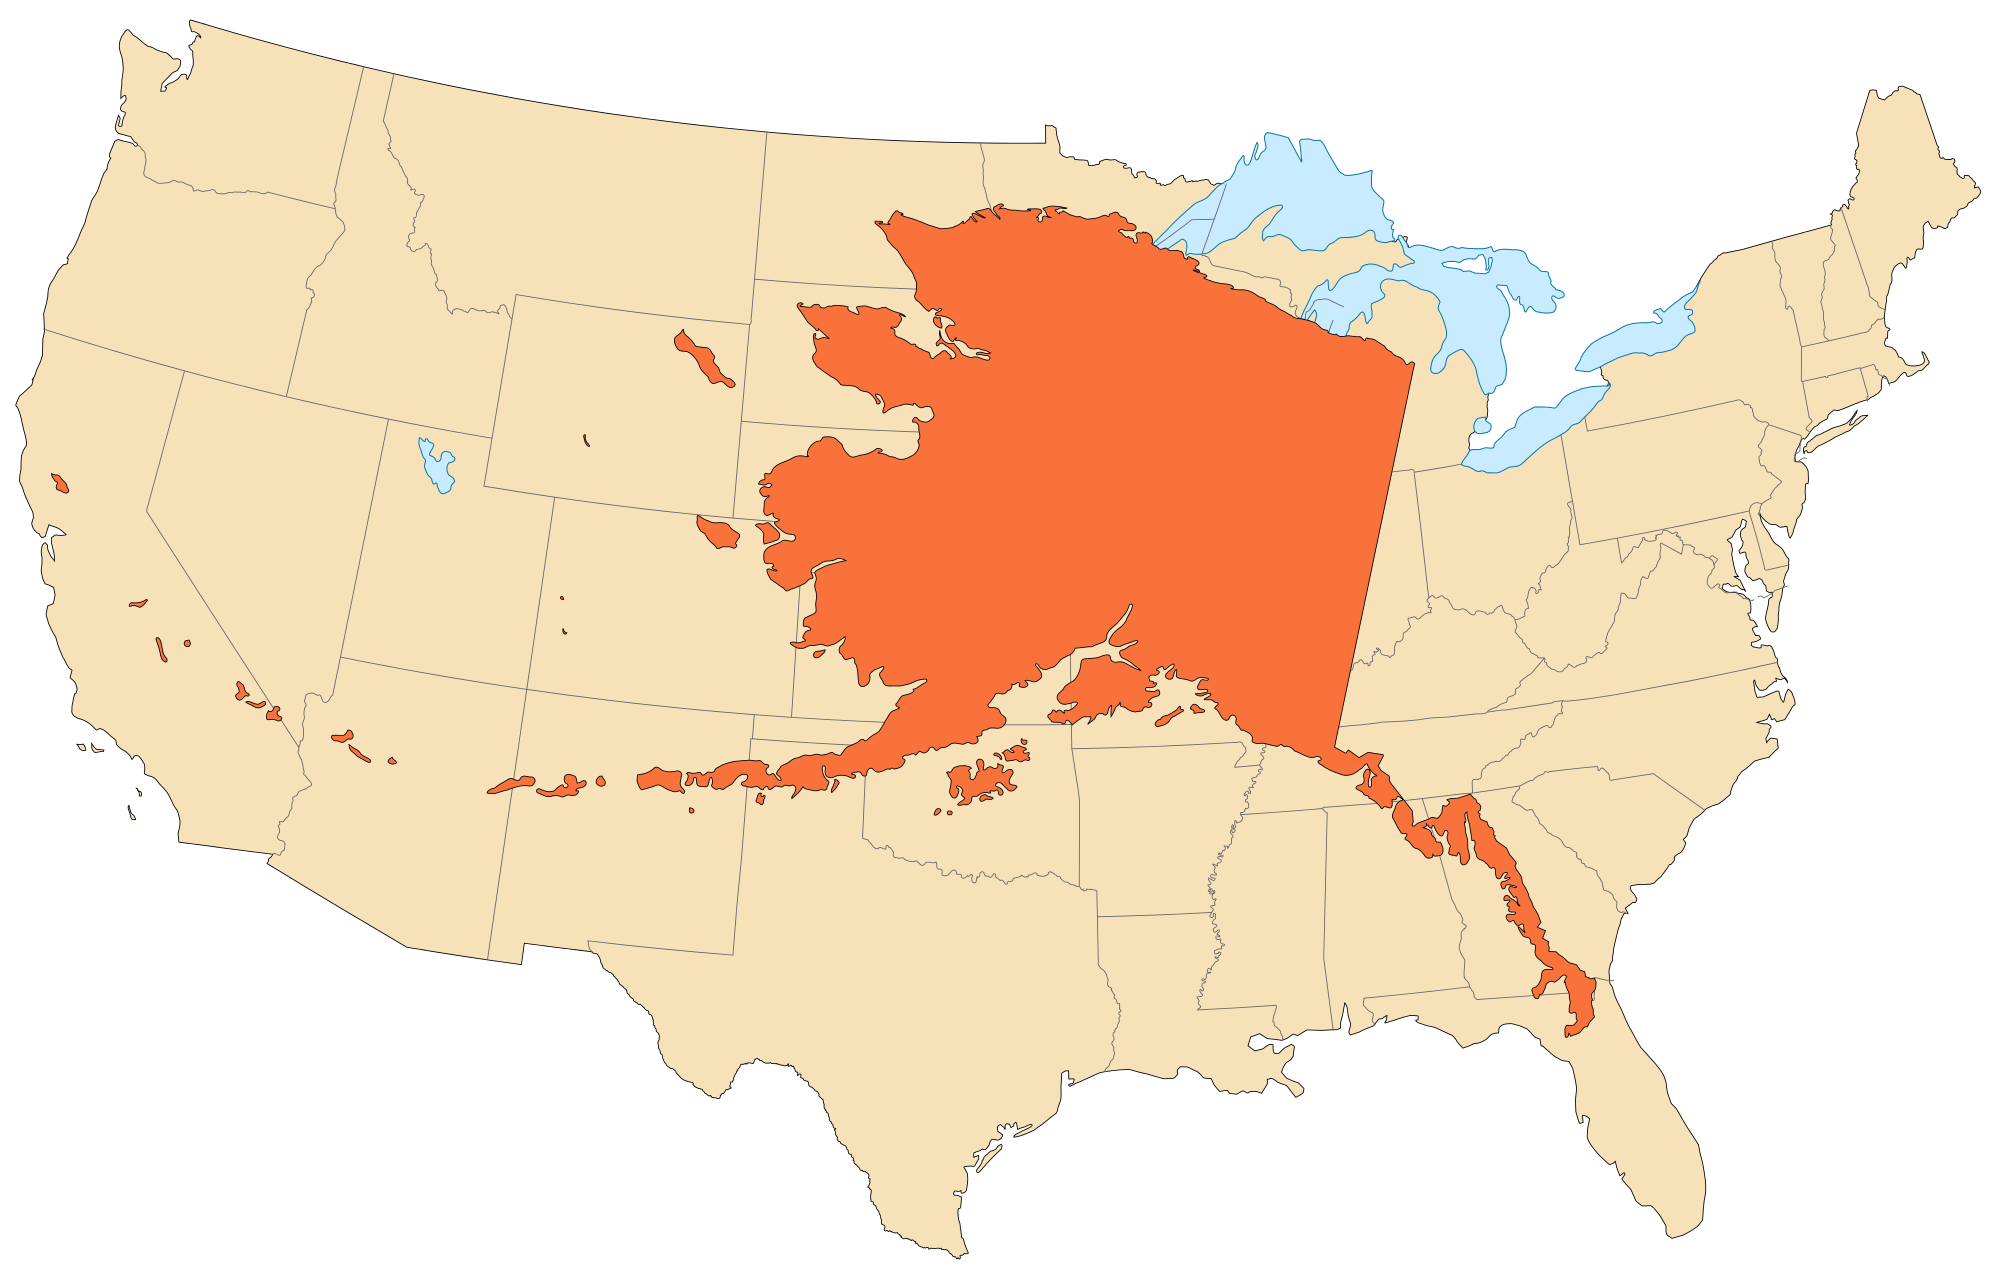 Alaskas Size Compared With The Contiguous States Albers - Us 48 states map